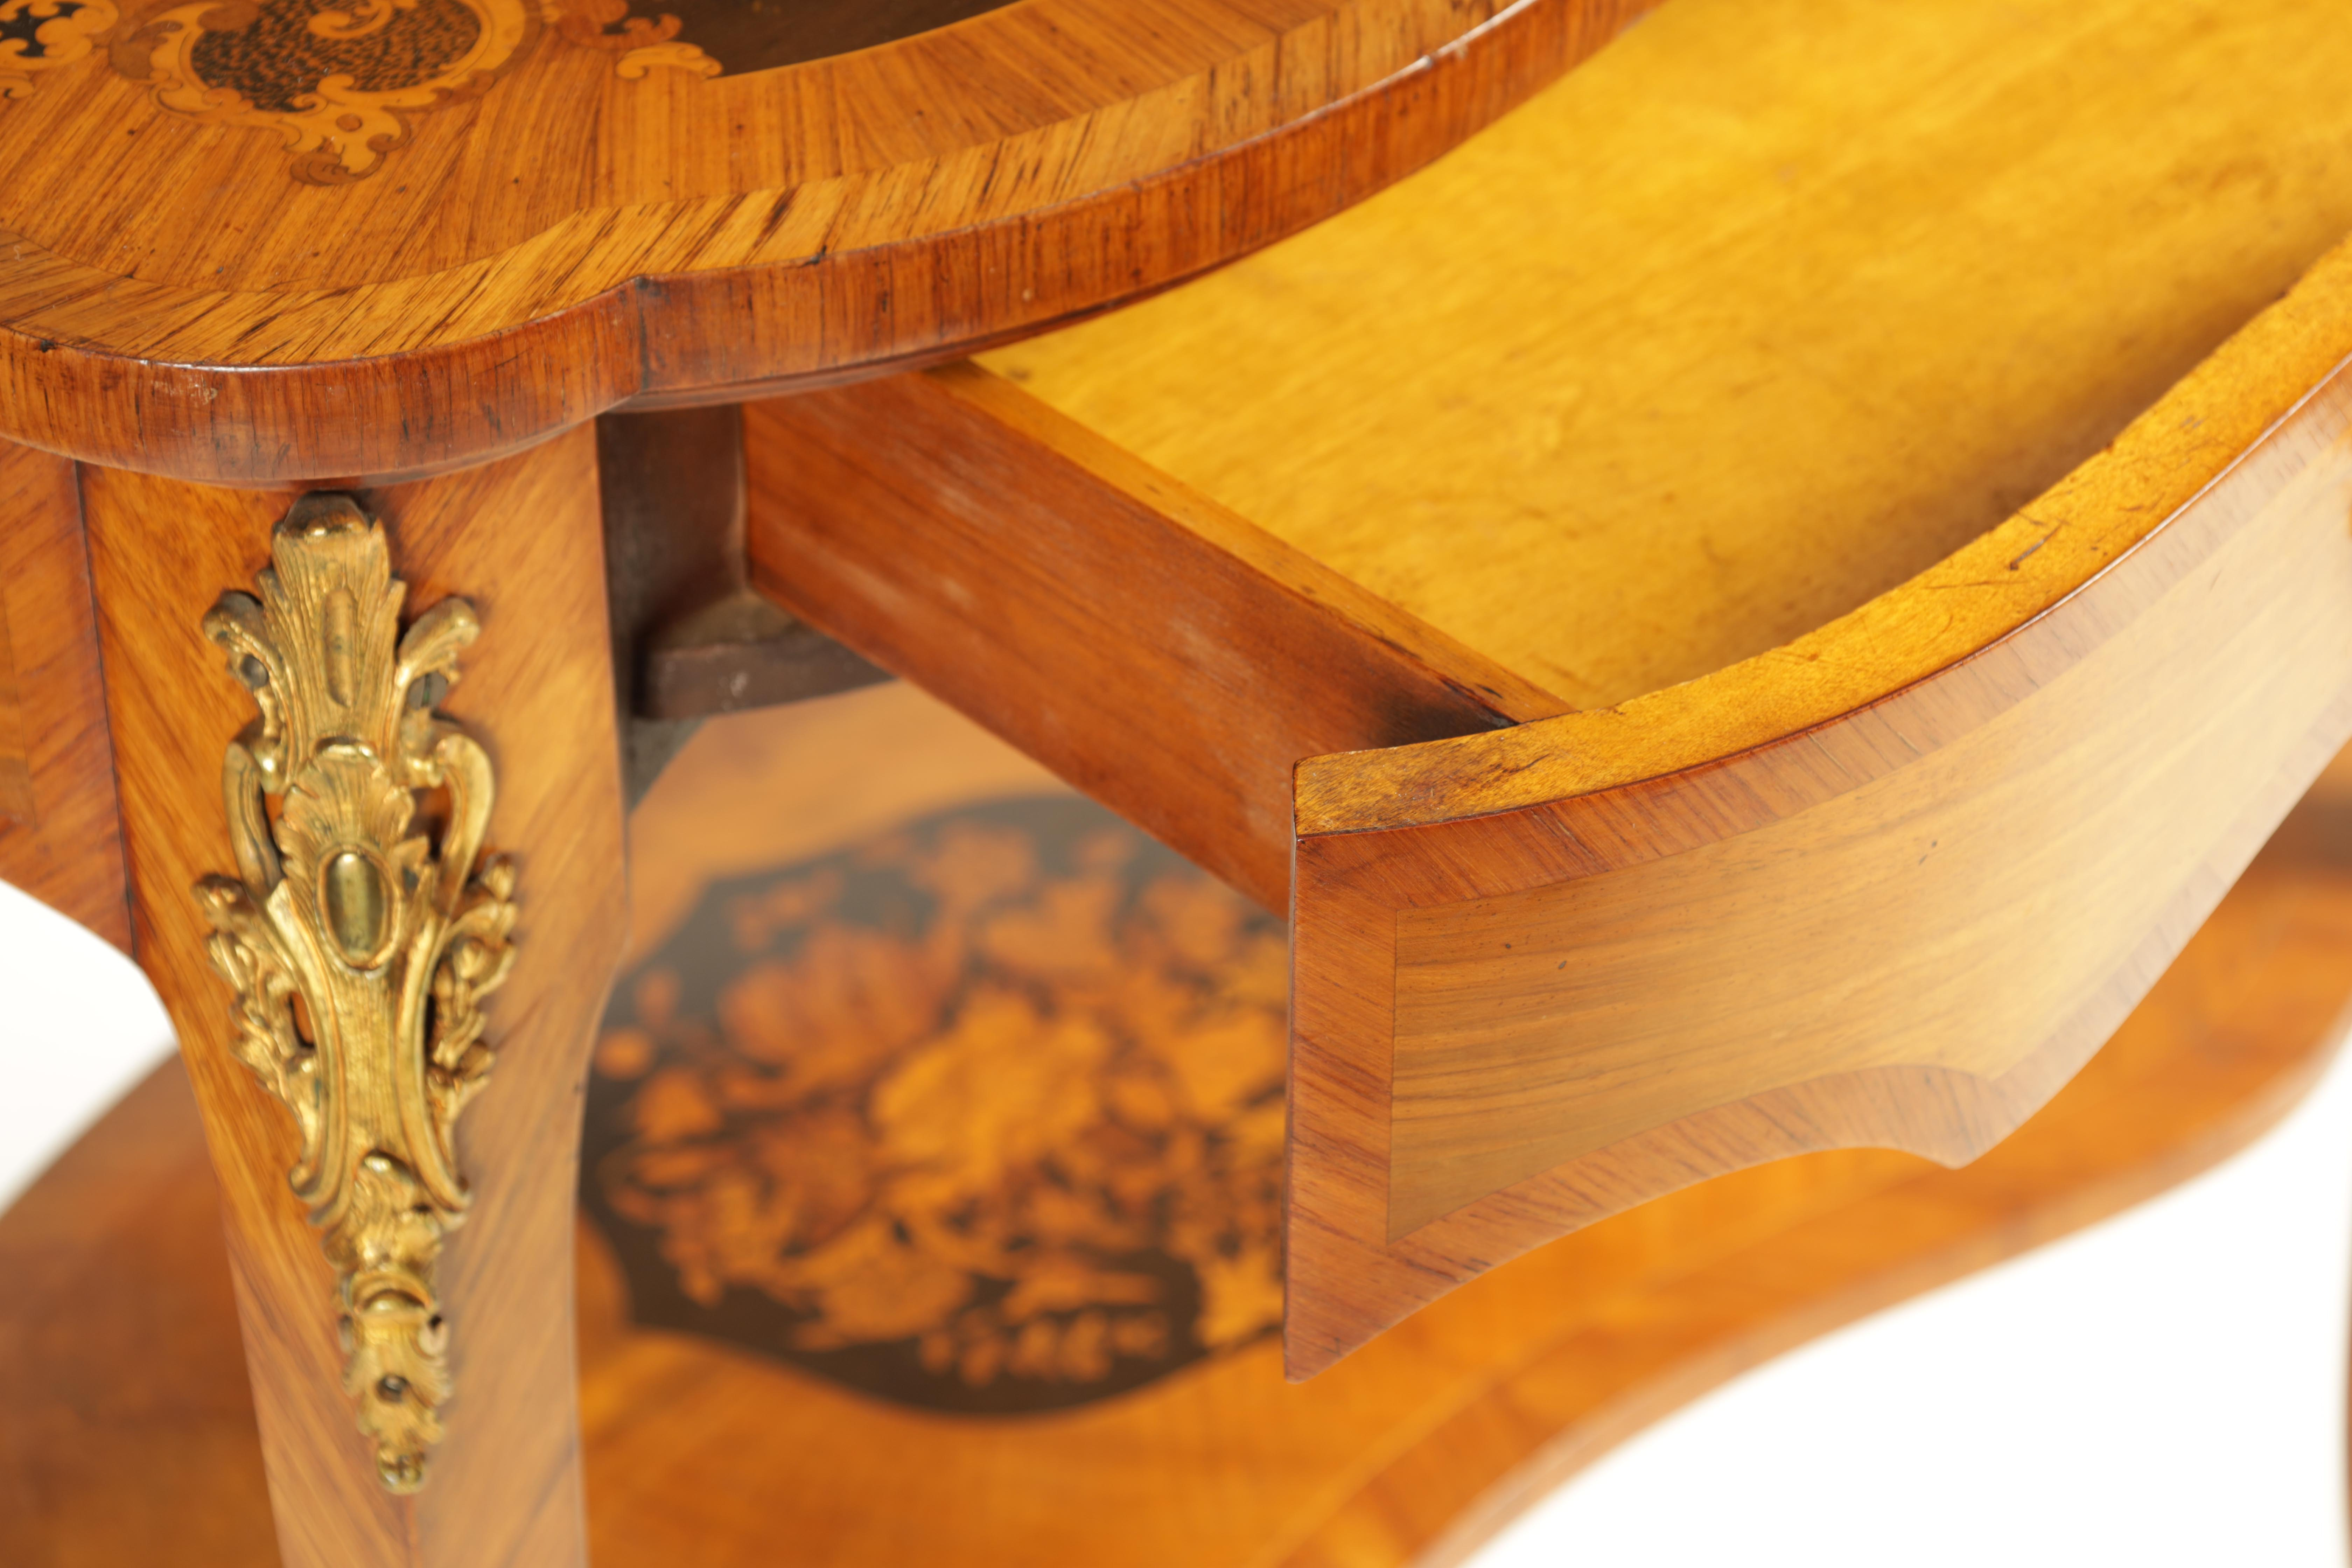 A FINE 19TH CENTURY MARQUETRY INLAID WALNUT KIDNEY SHAPED WRITING TABLE with raised brass - Image 5 of 10